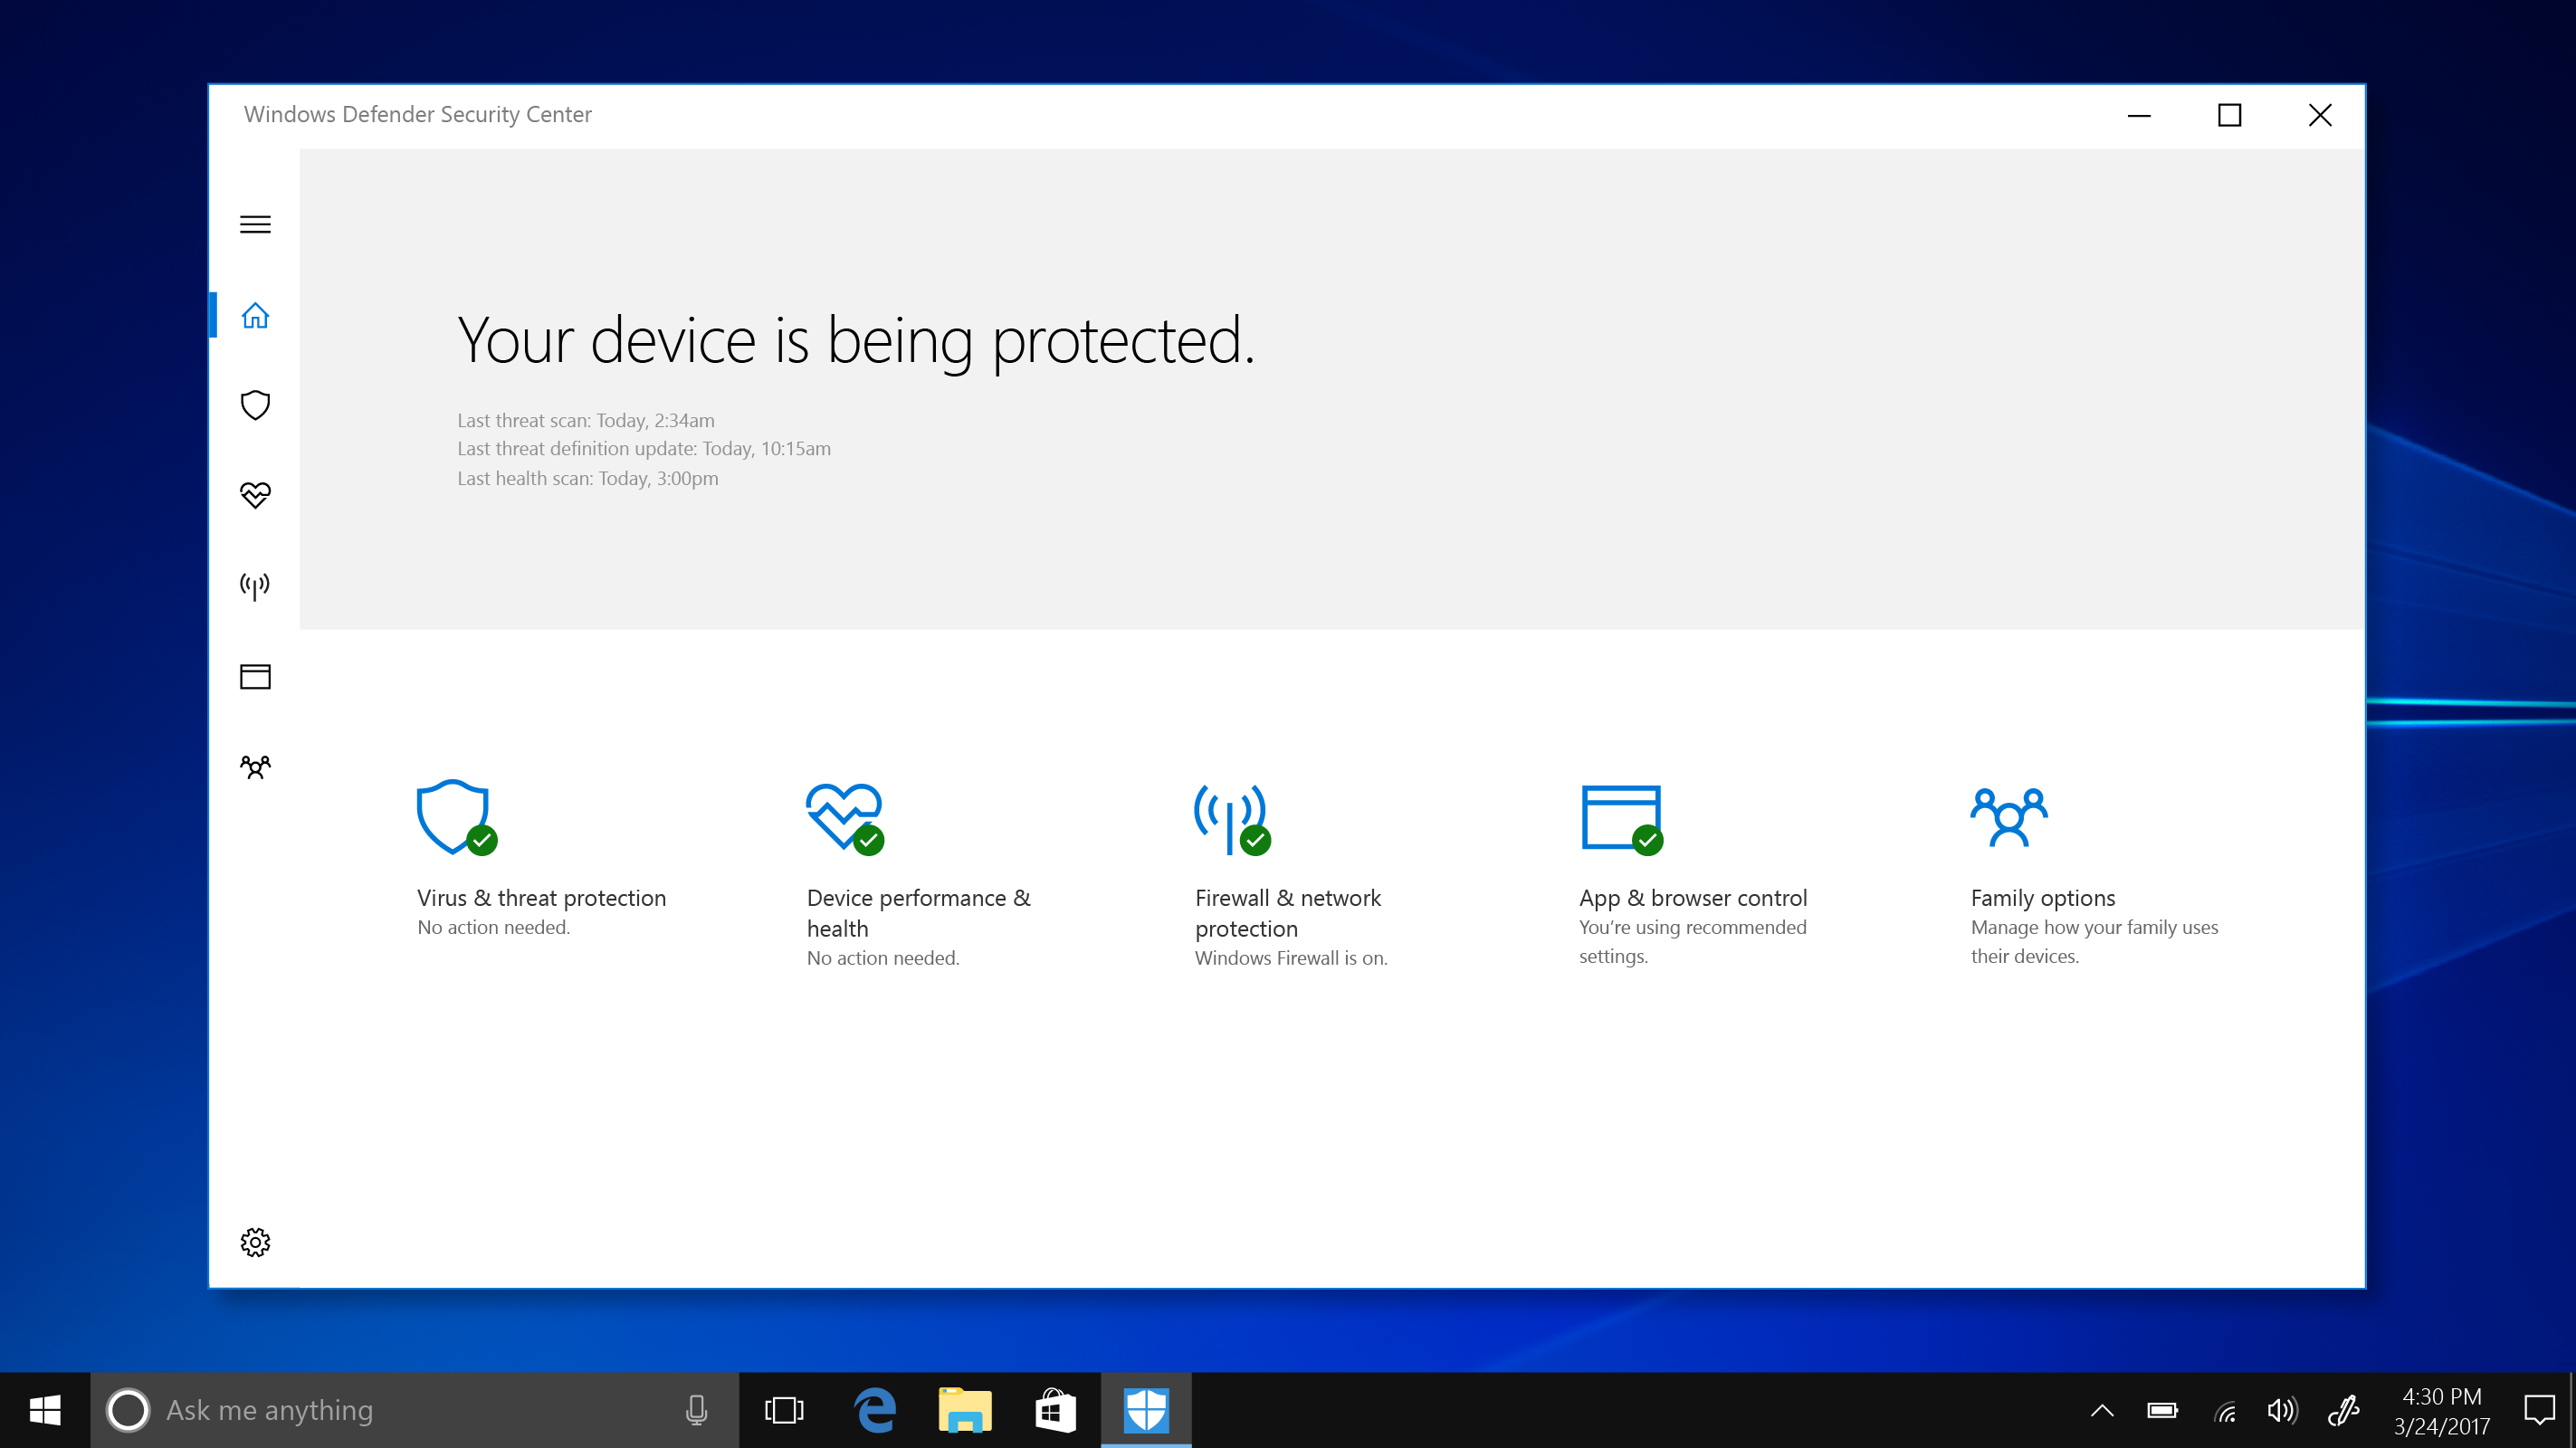 Windows Defender Security Center shown on Windows 10 S